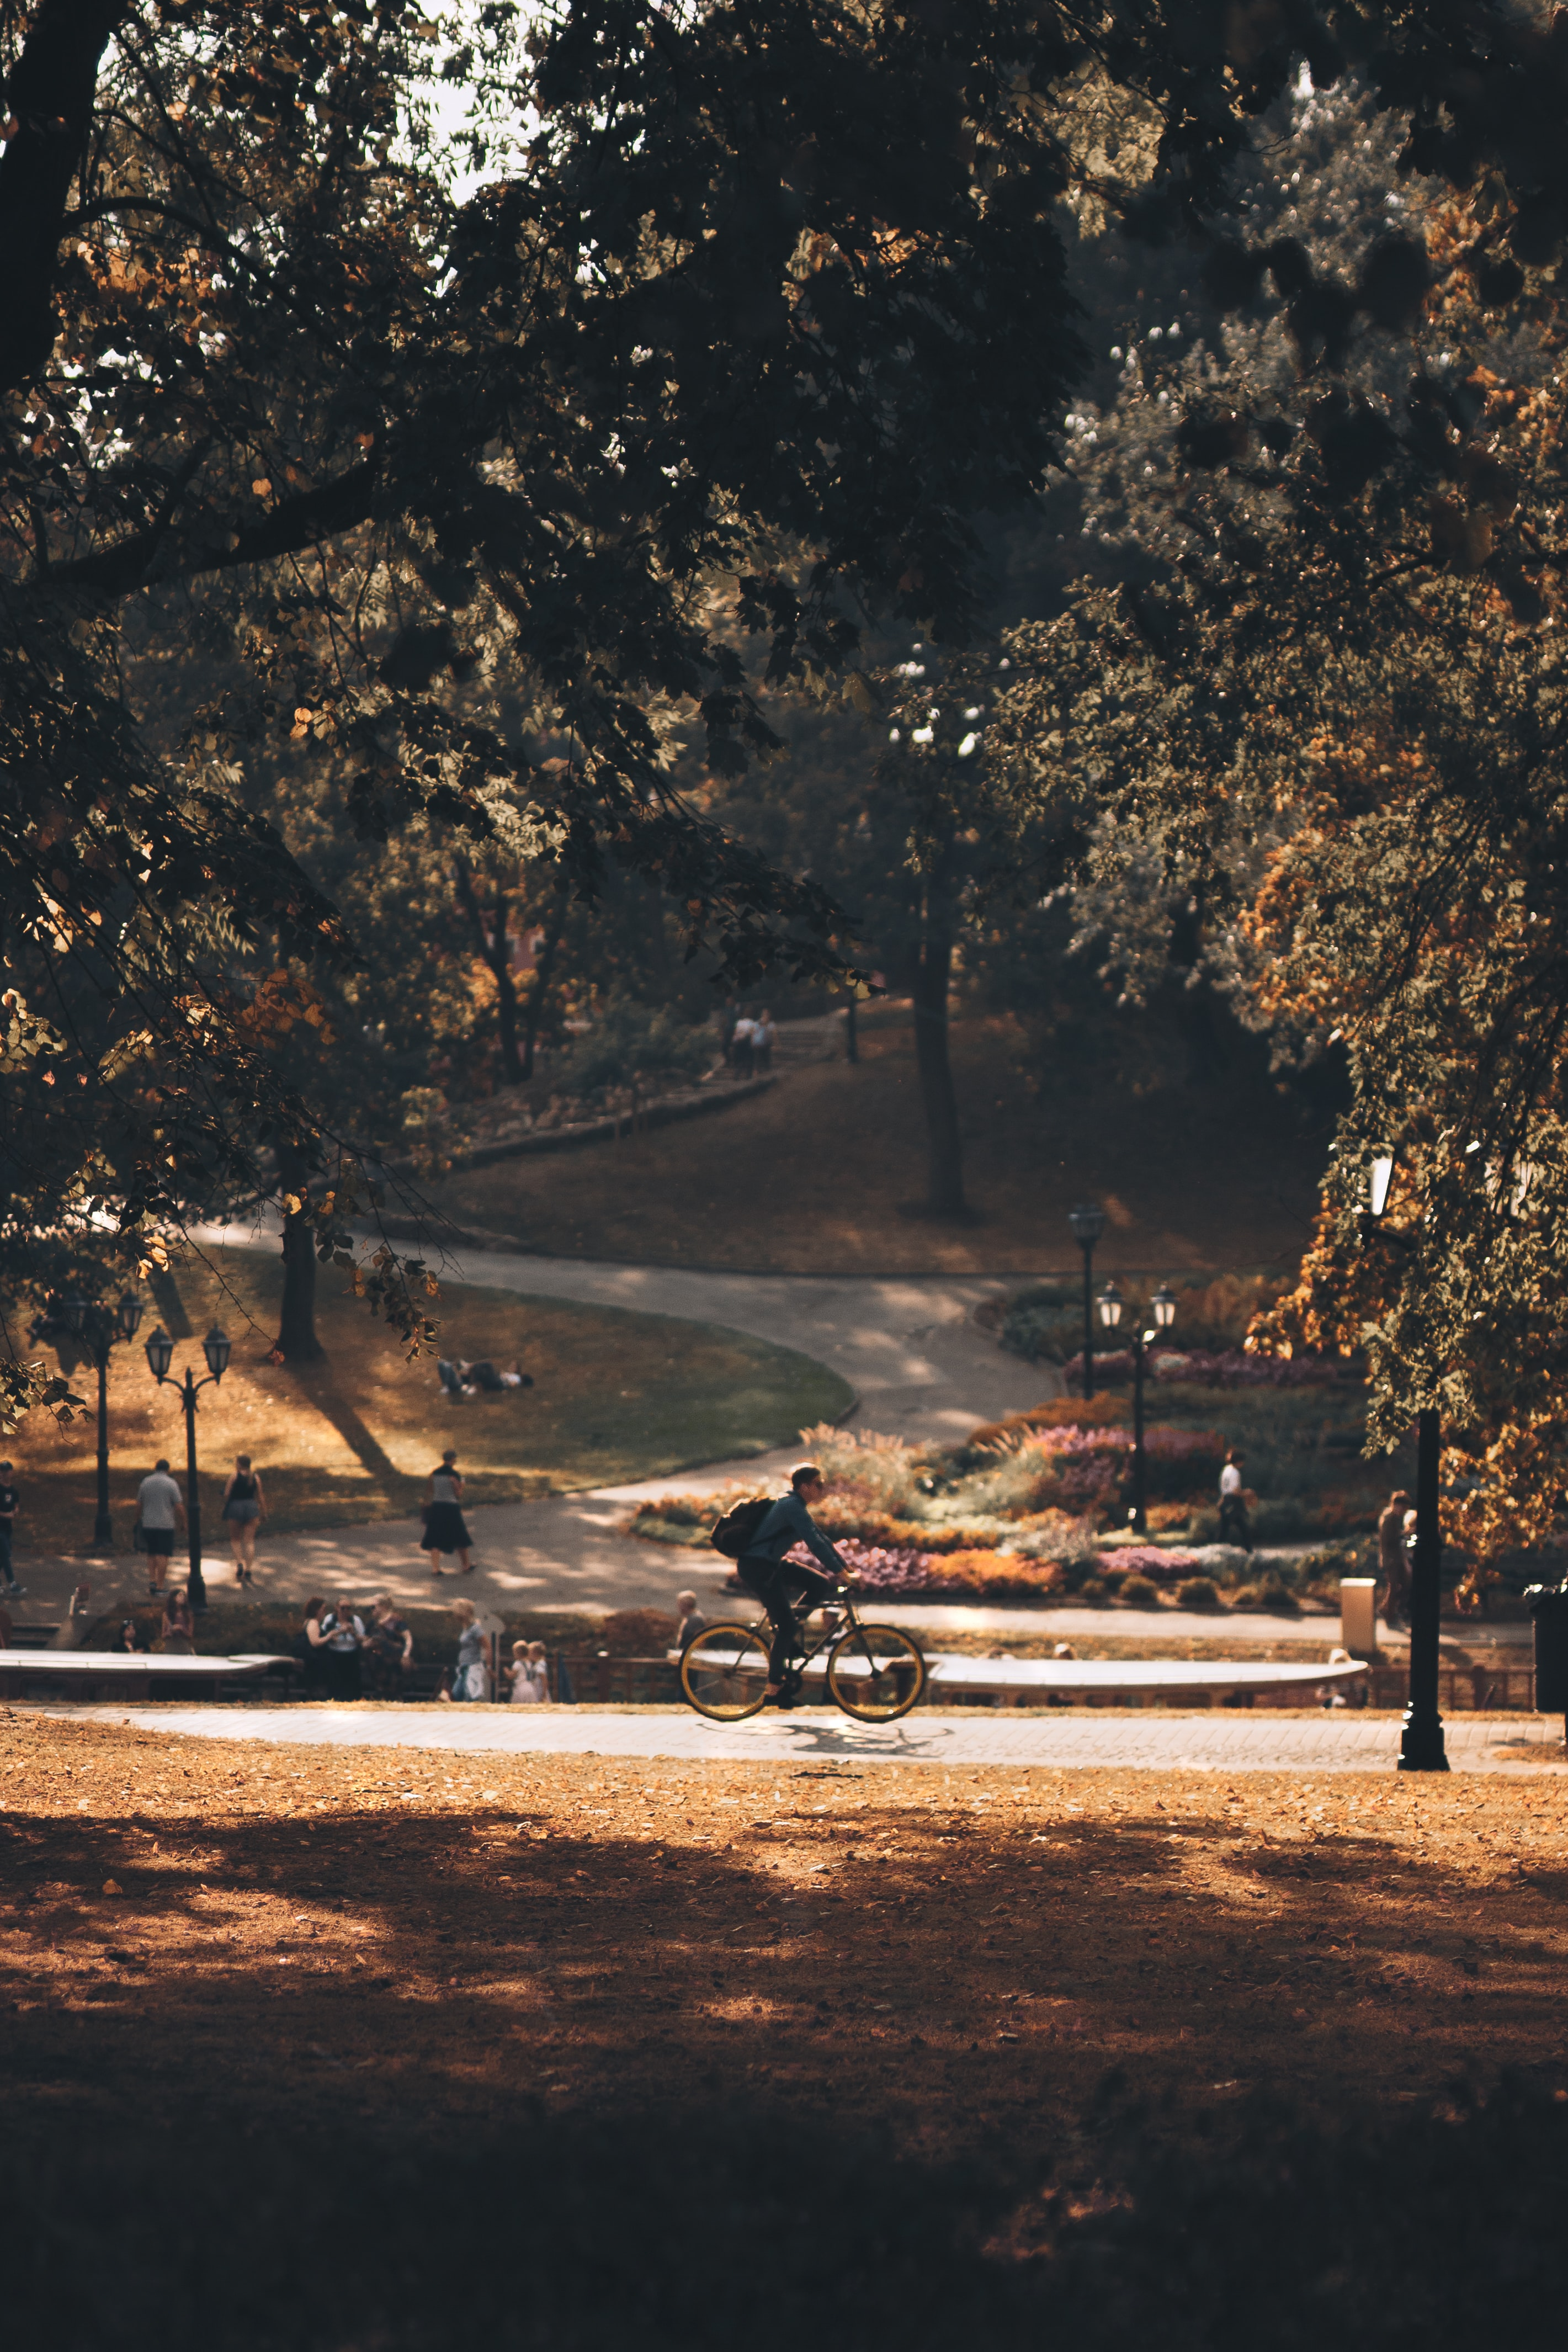 person riding bicycle on park